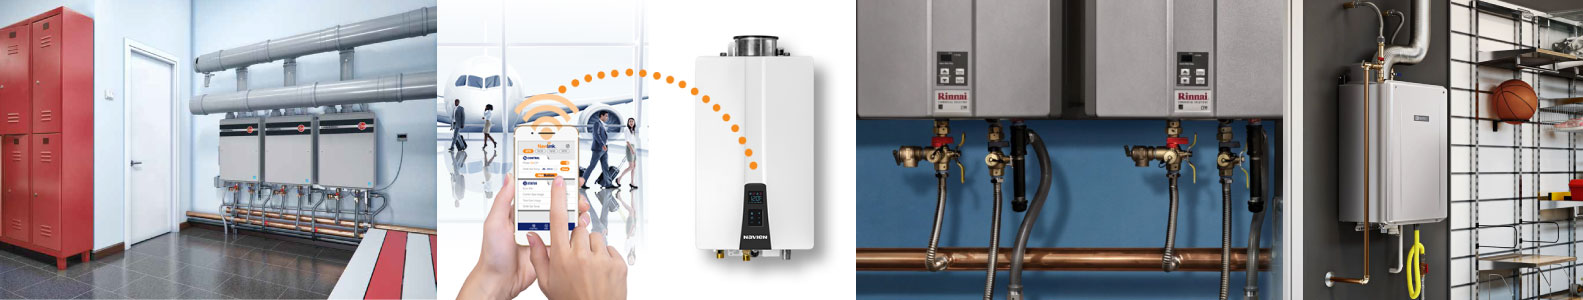 Tankless services from Hot Water Now!